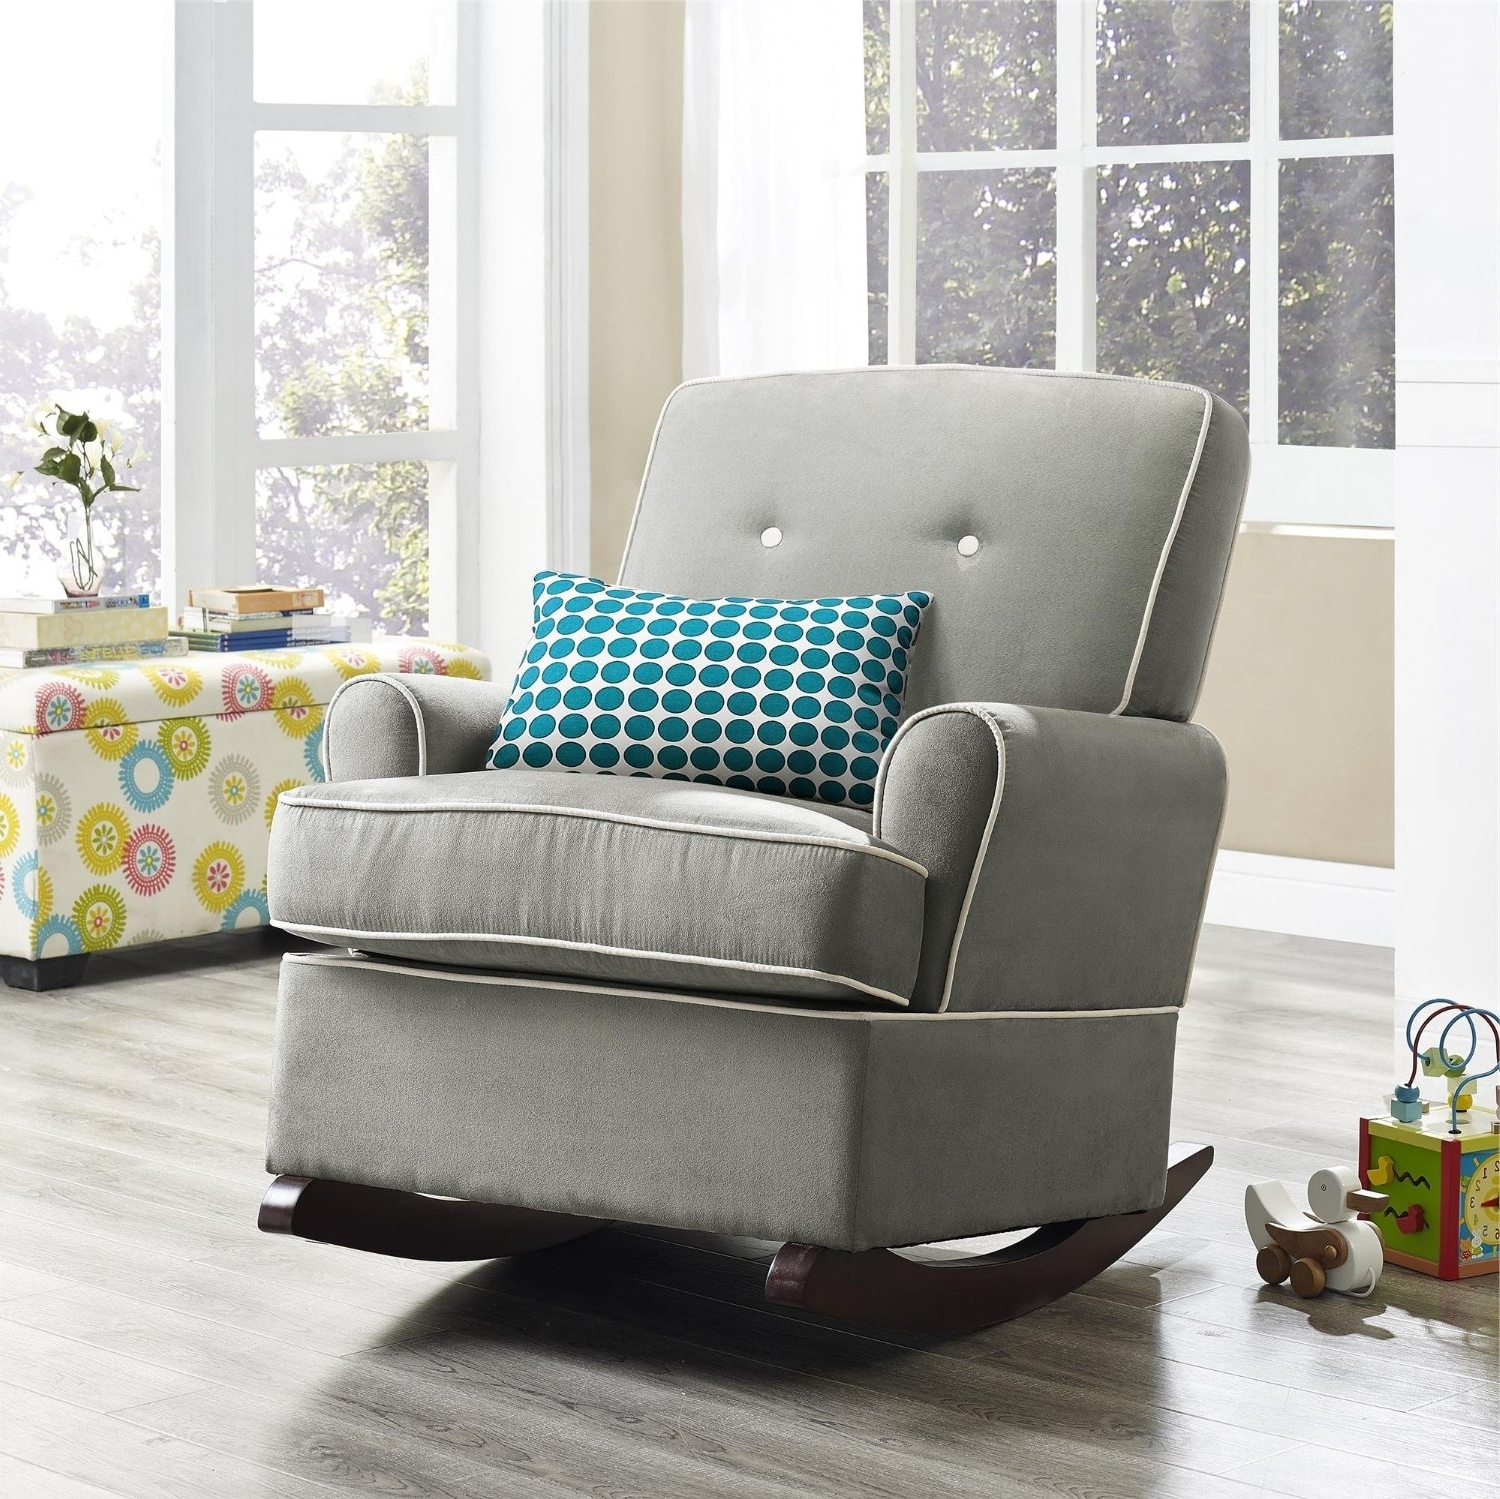 Best Rocking Chairs With Regard To Favorite Rocking Chairs For Adults (View 18 of 20)